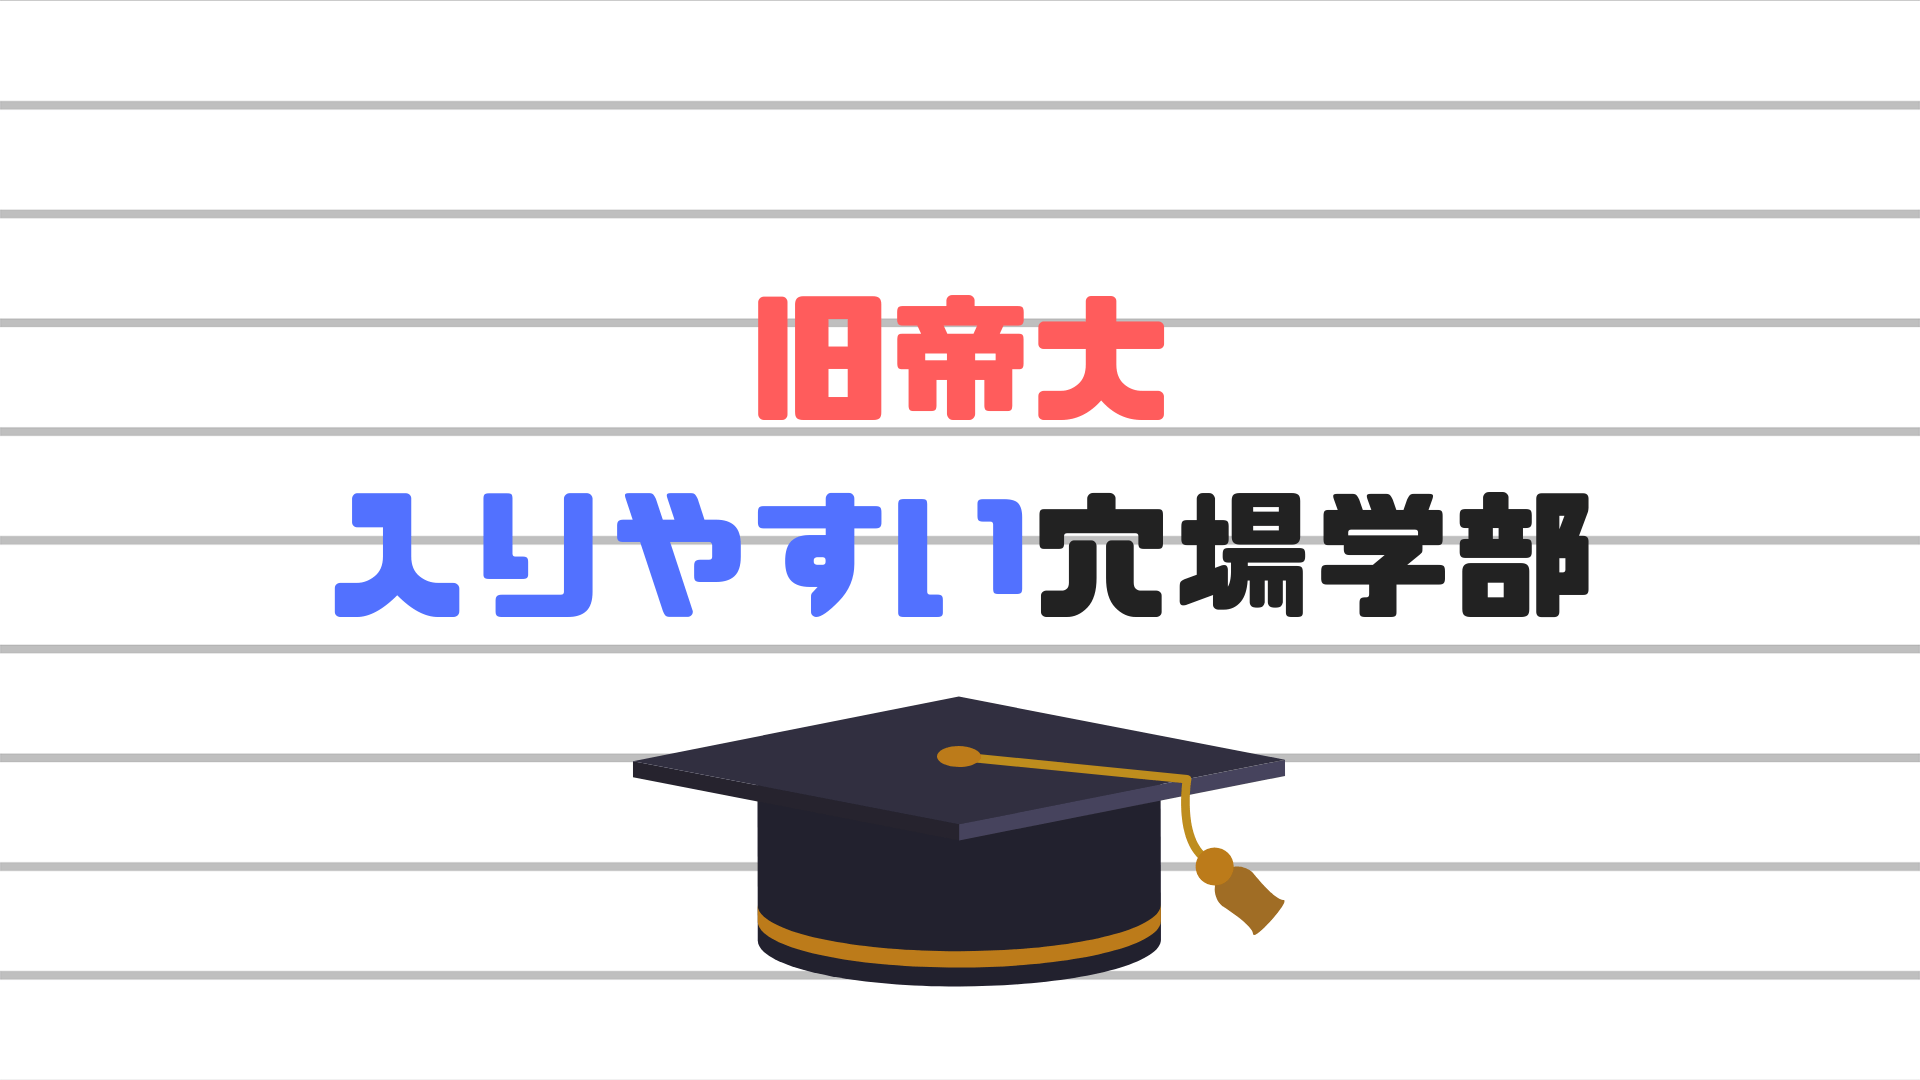 march 入り やすい 学部